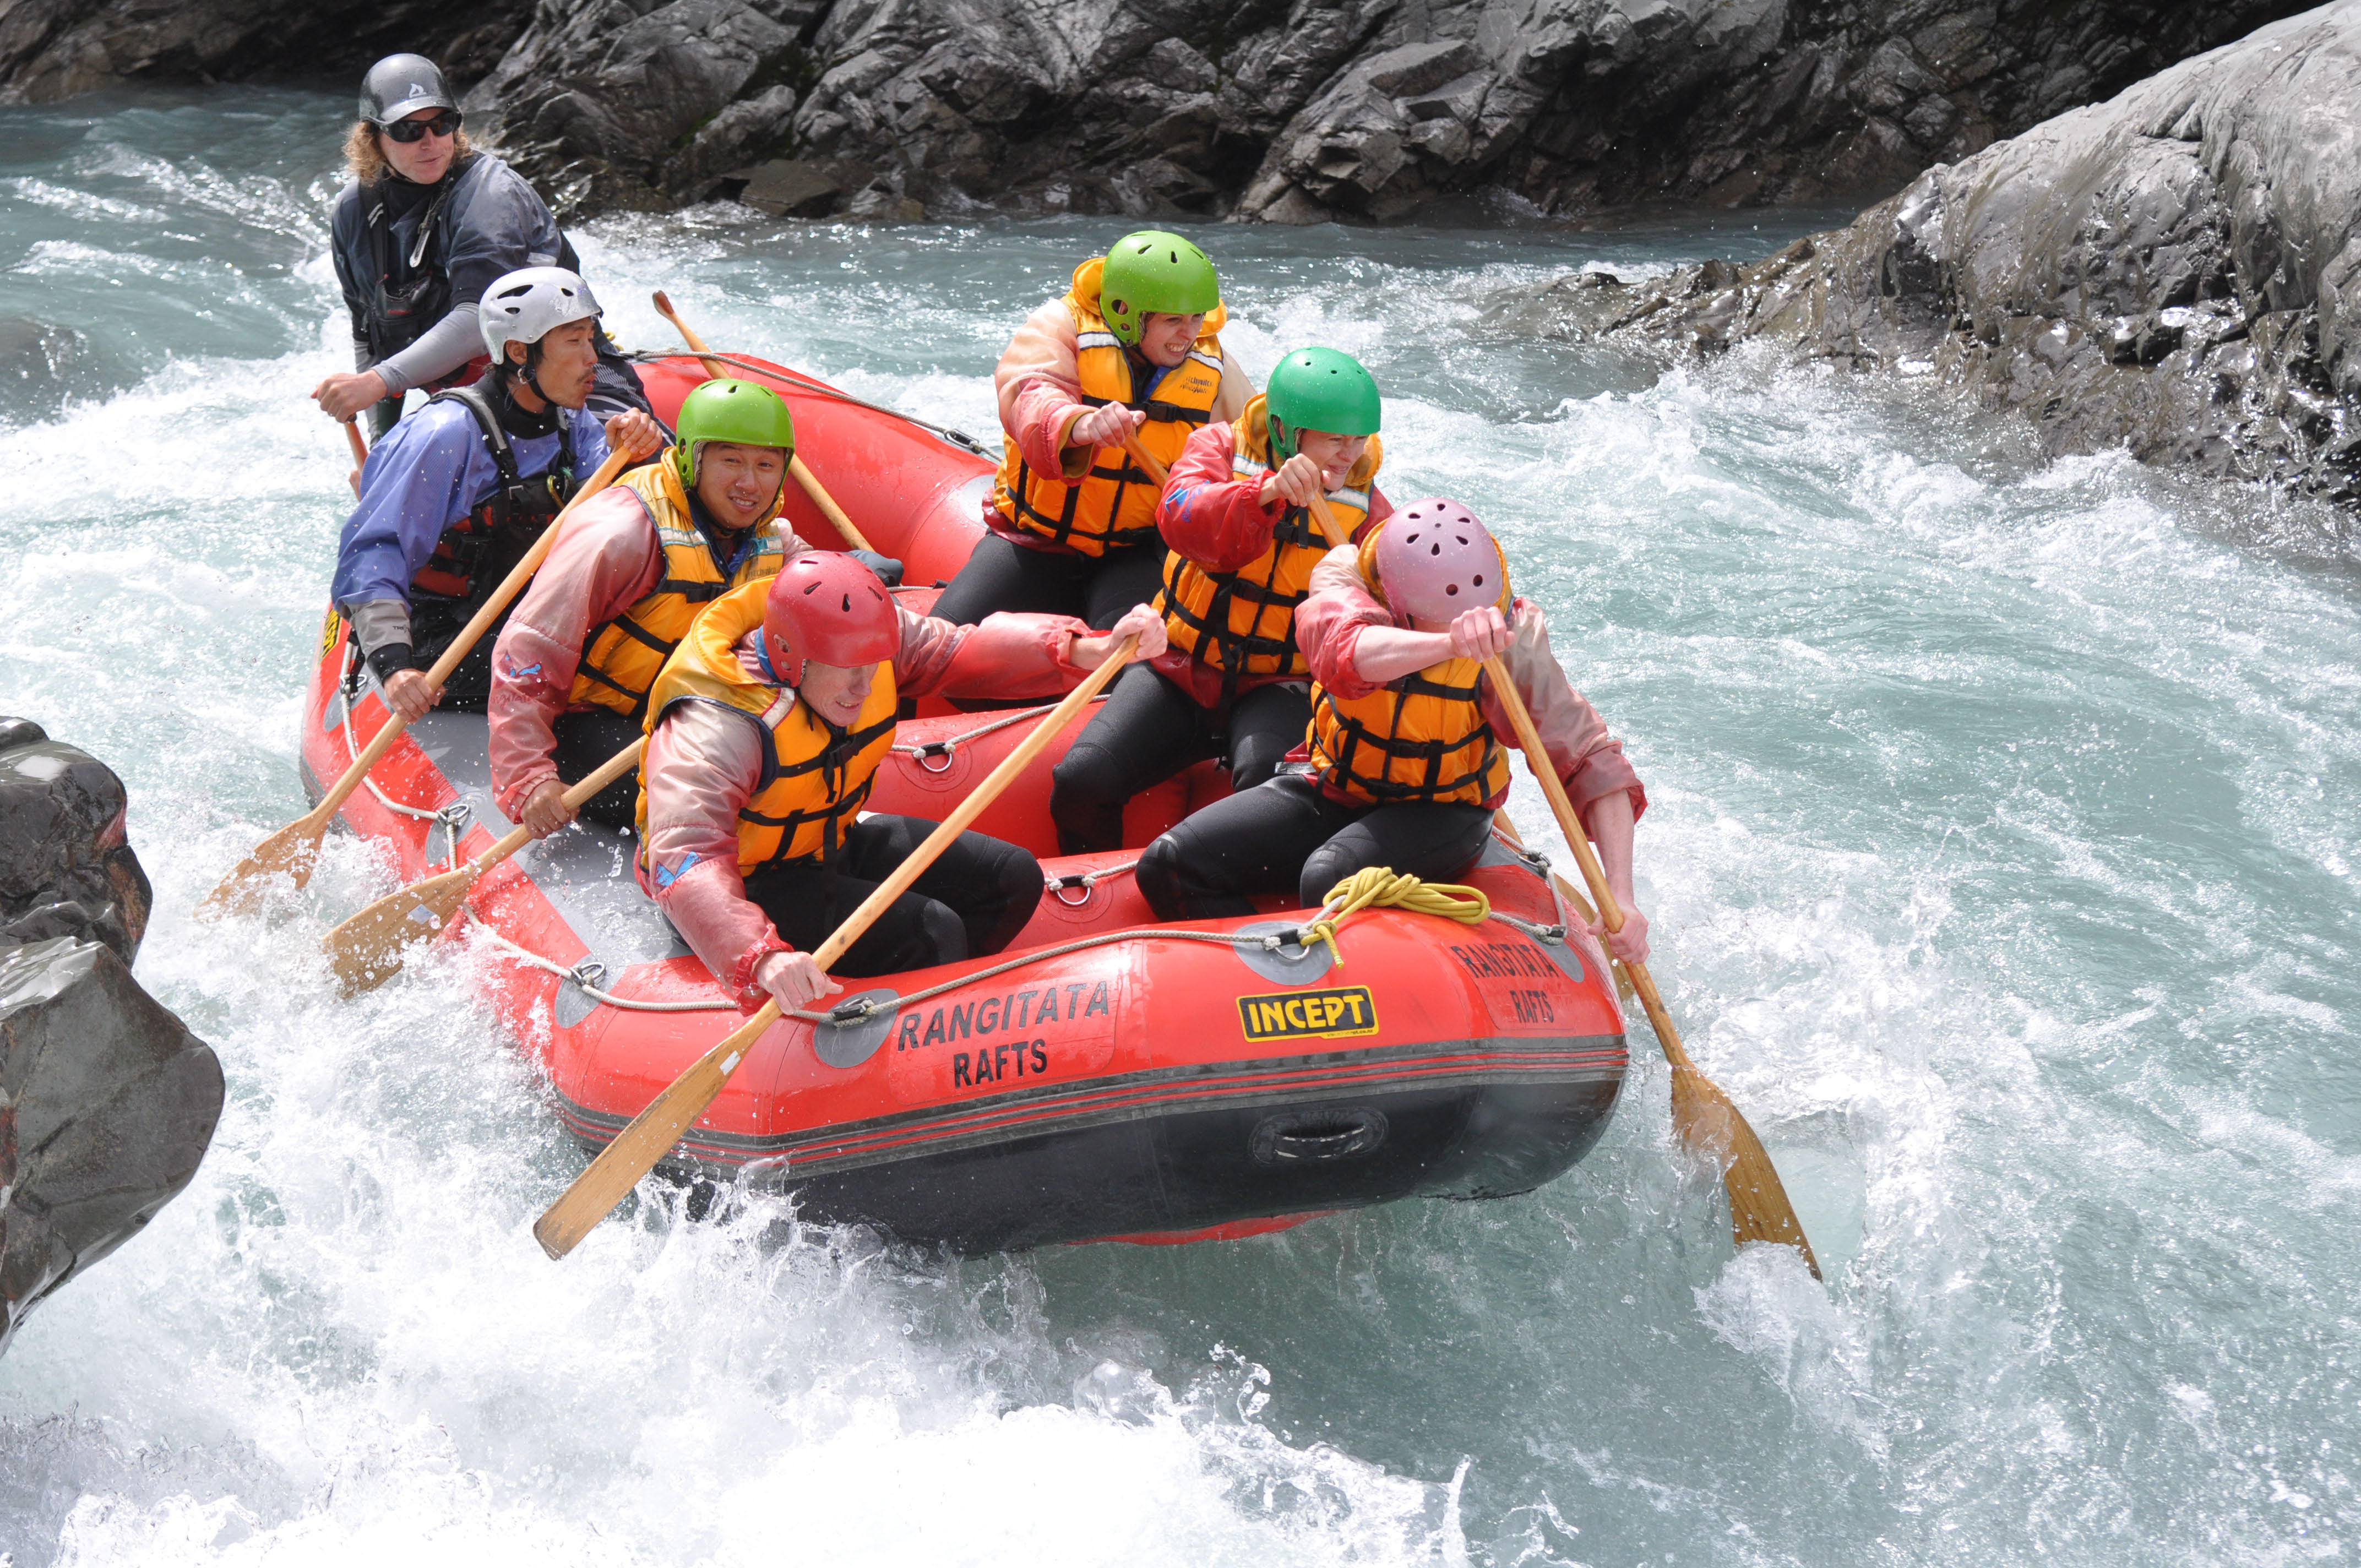 man overboard whitewater rafting on the rangitata river. Black Bedroom Furniture Sets. Home Design Ideas